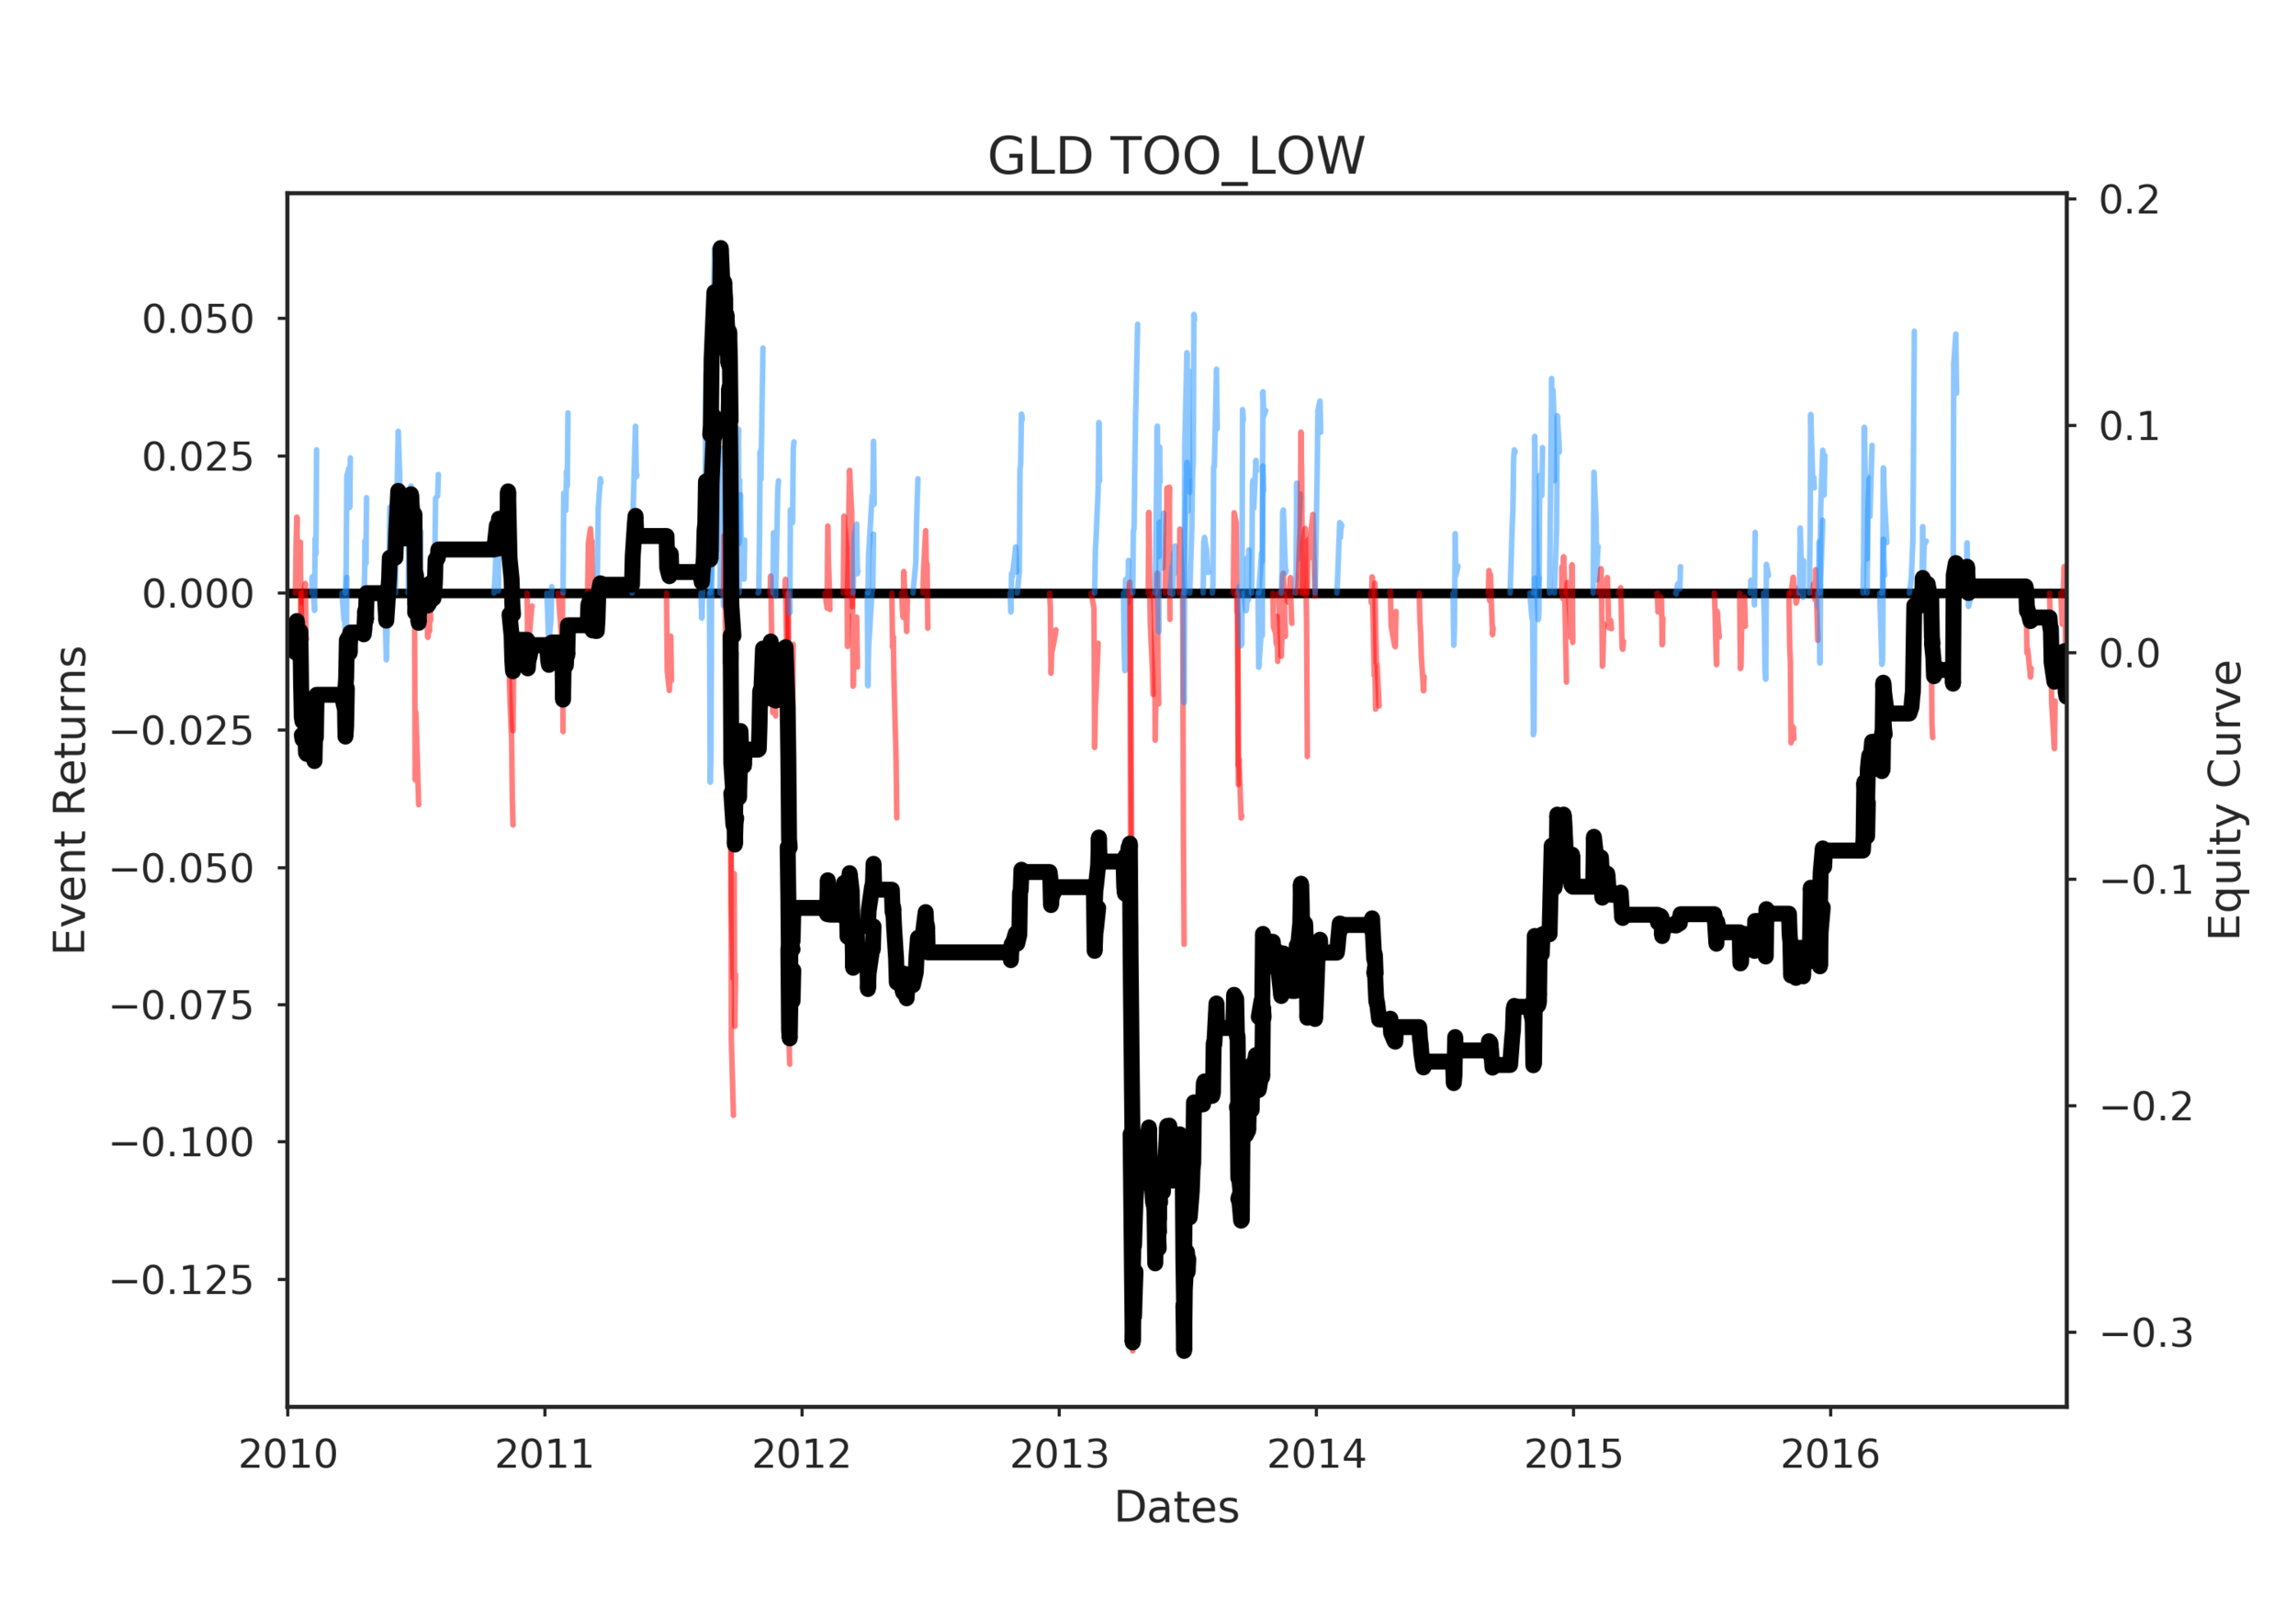 GLD TOO_LOW post events timeline 2017-04-04 17:15:23.843916.png